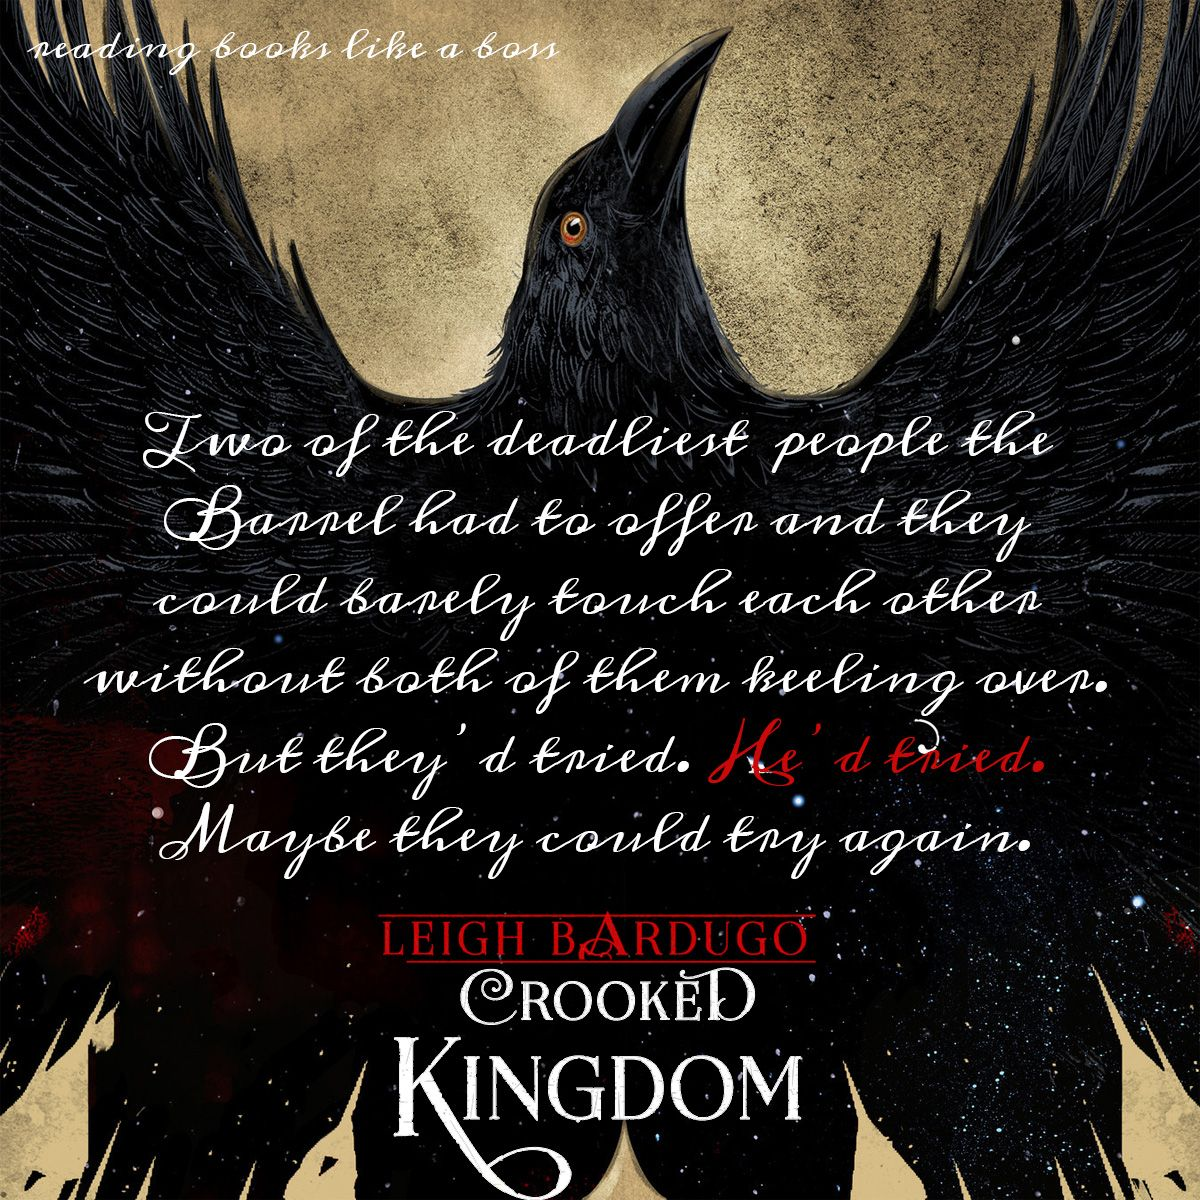 Book Review - Crooked Kingdom By Leigh Bardugo